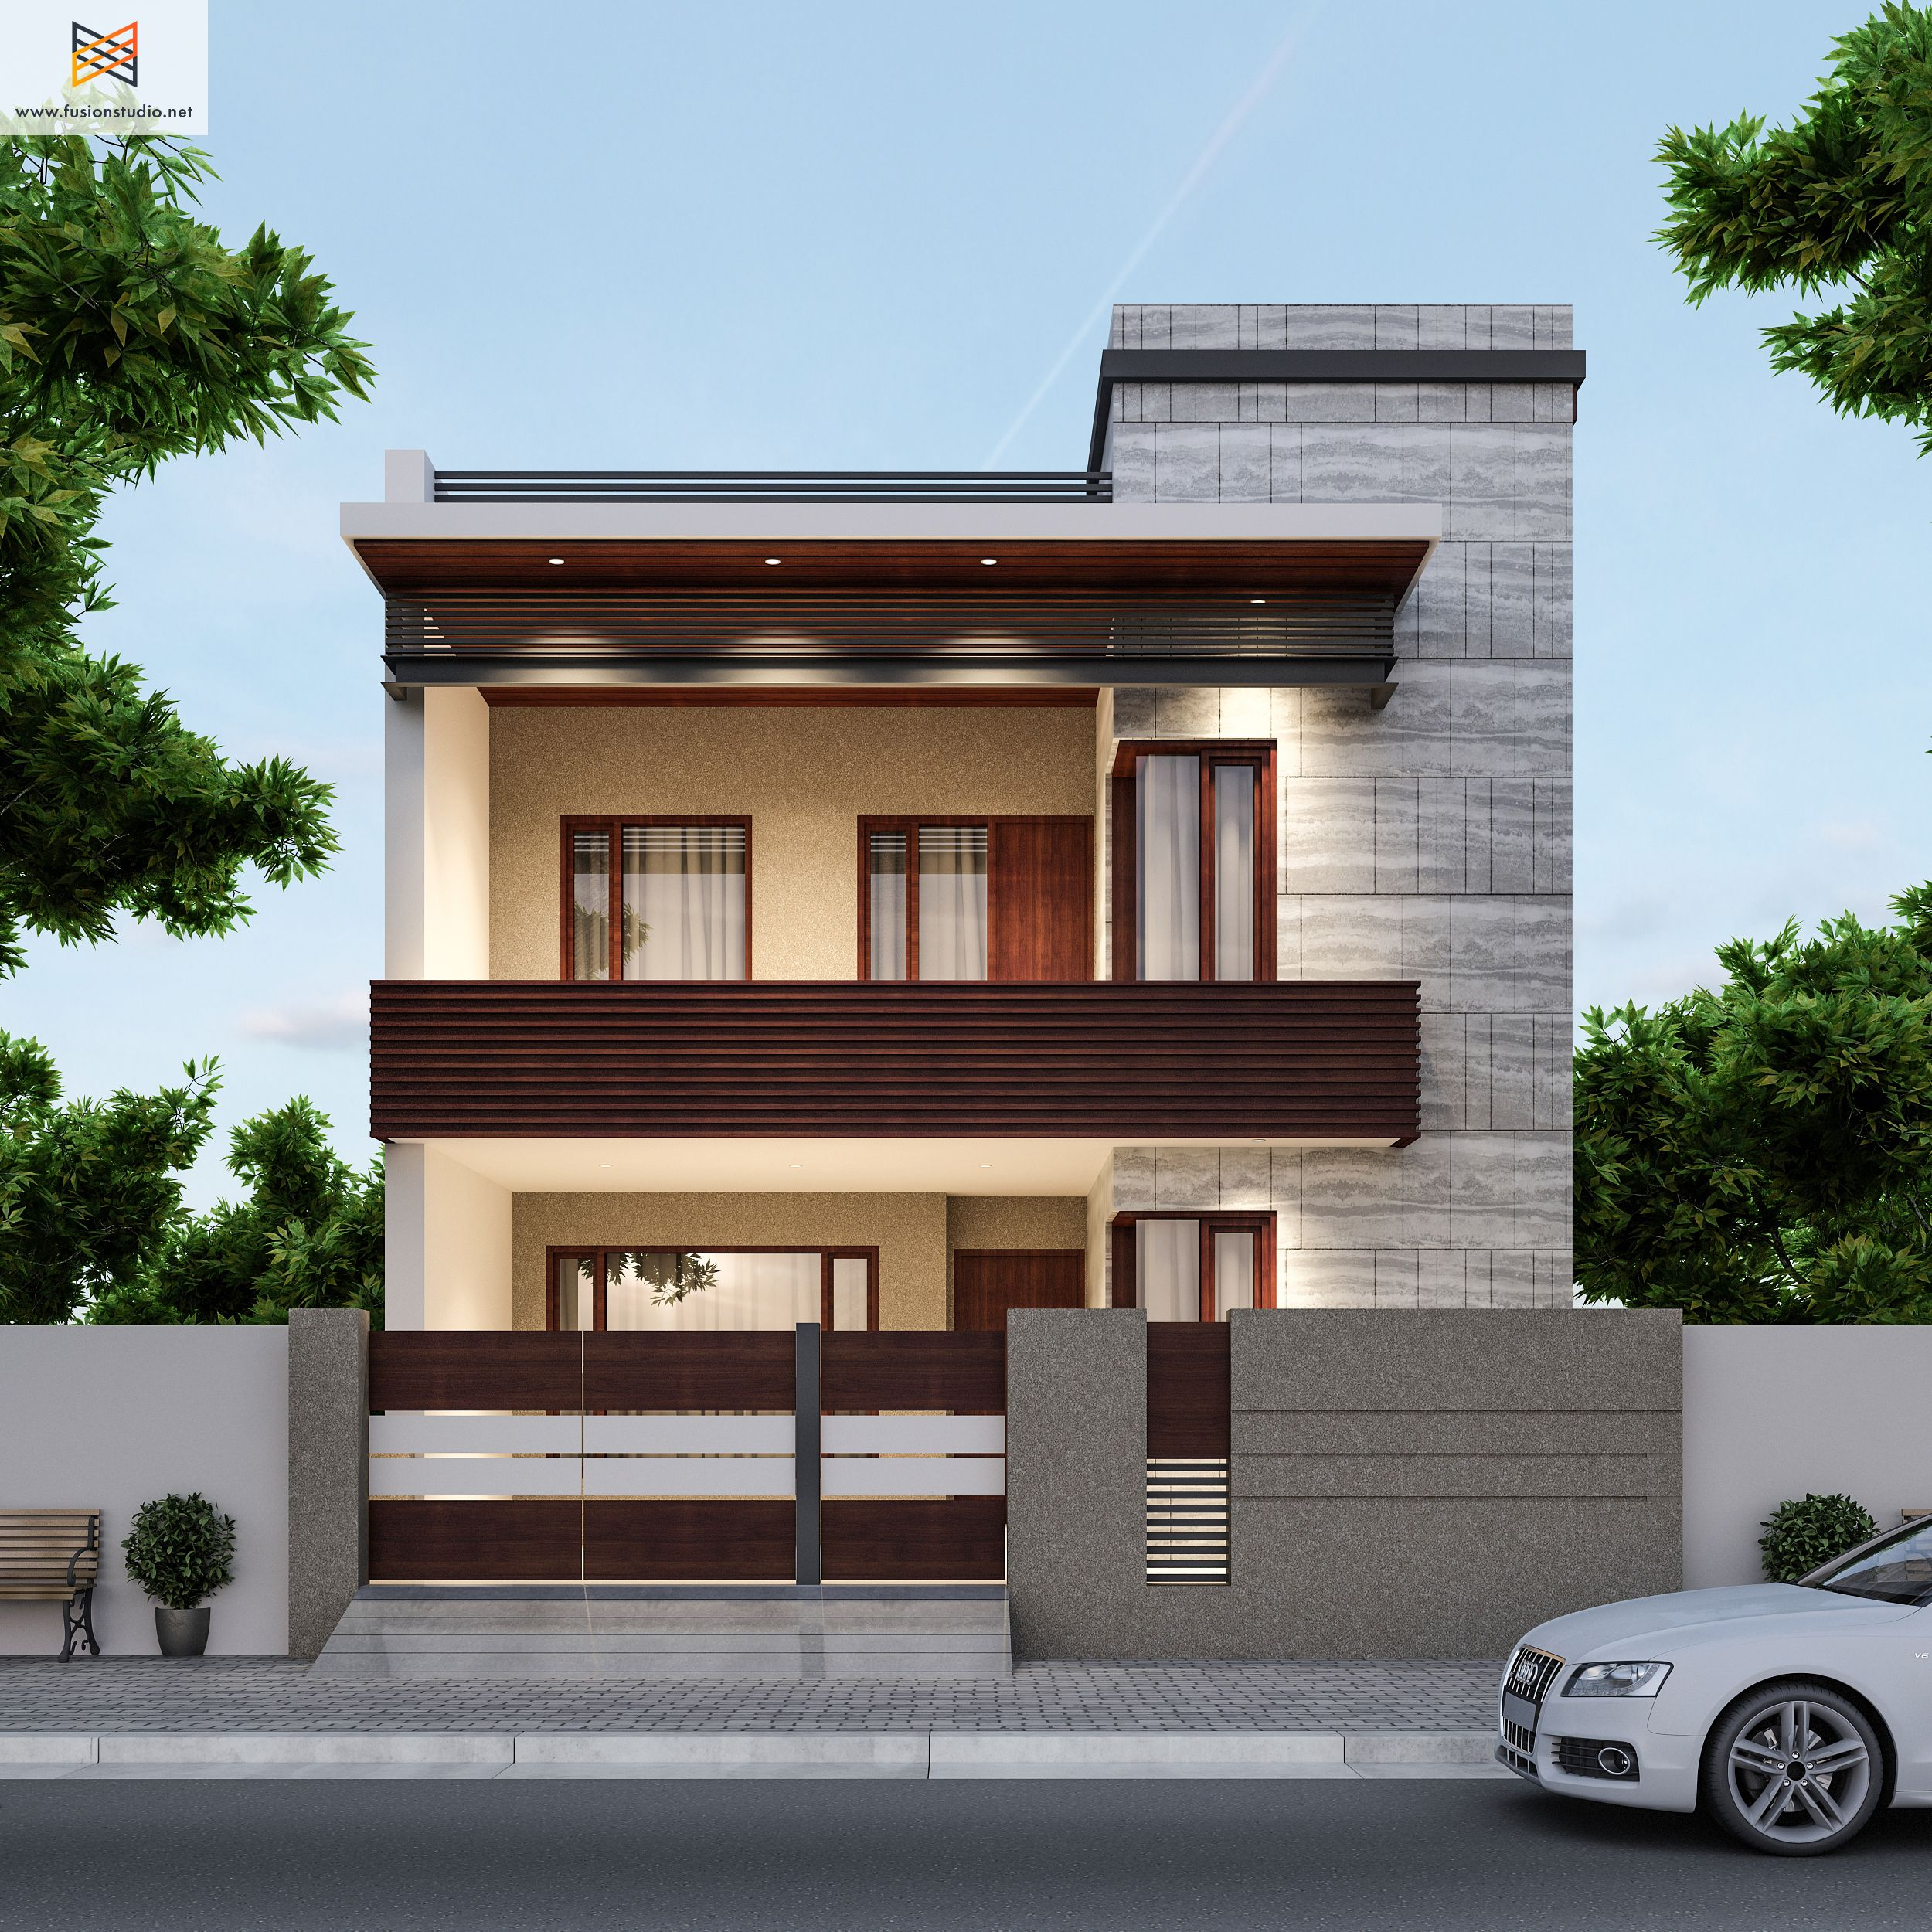 Front Elevation For 25 Feet Front : Echa un vistazo a este proyecto behance u c yards